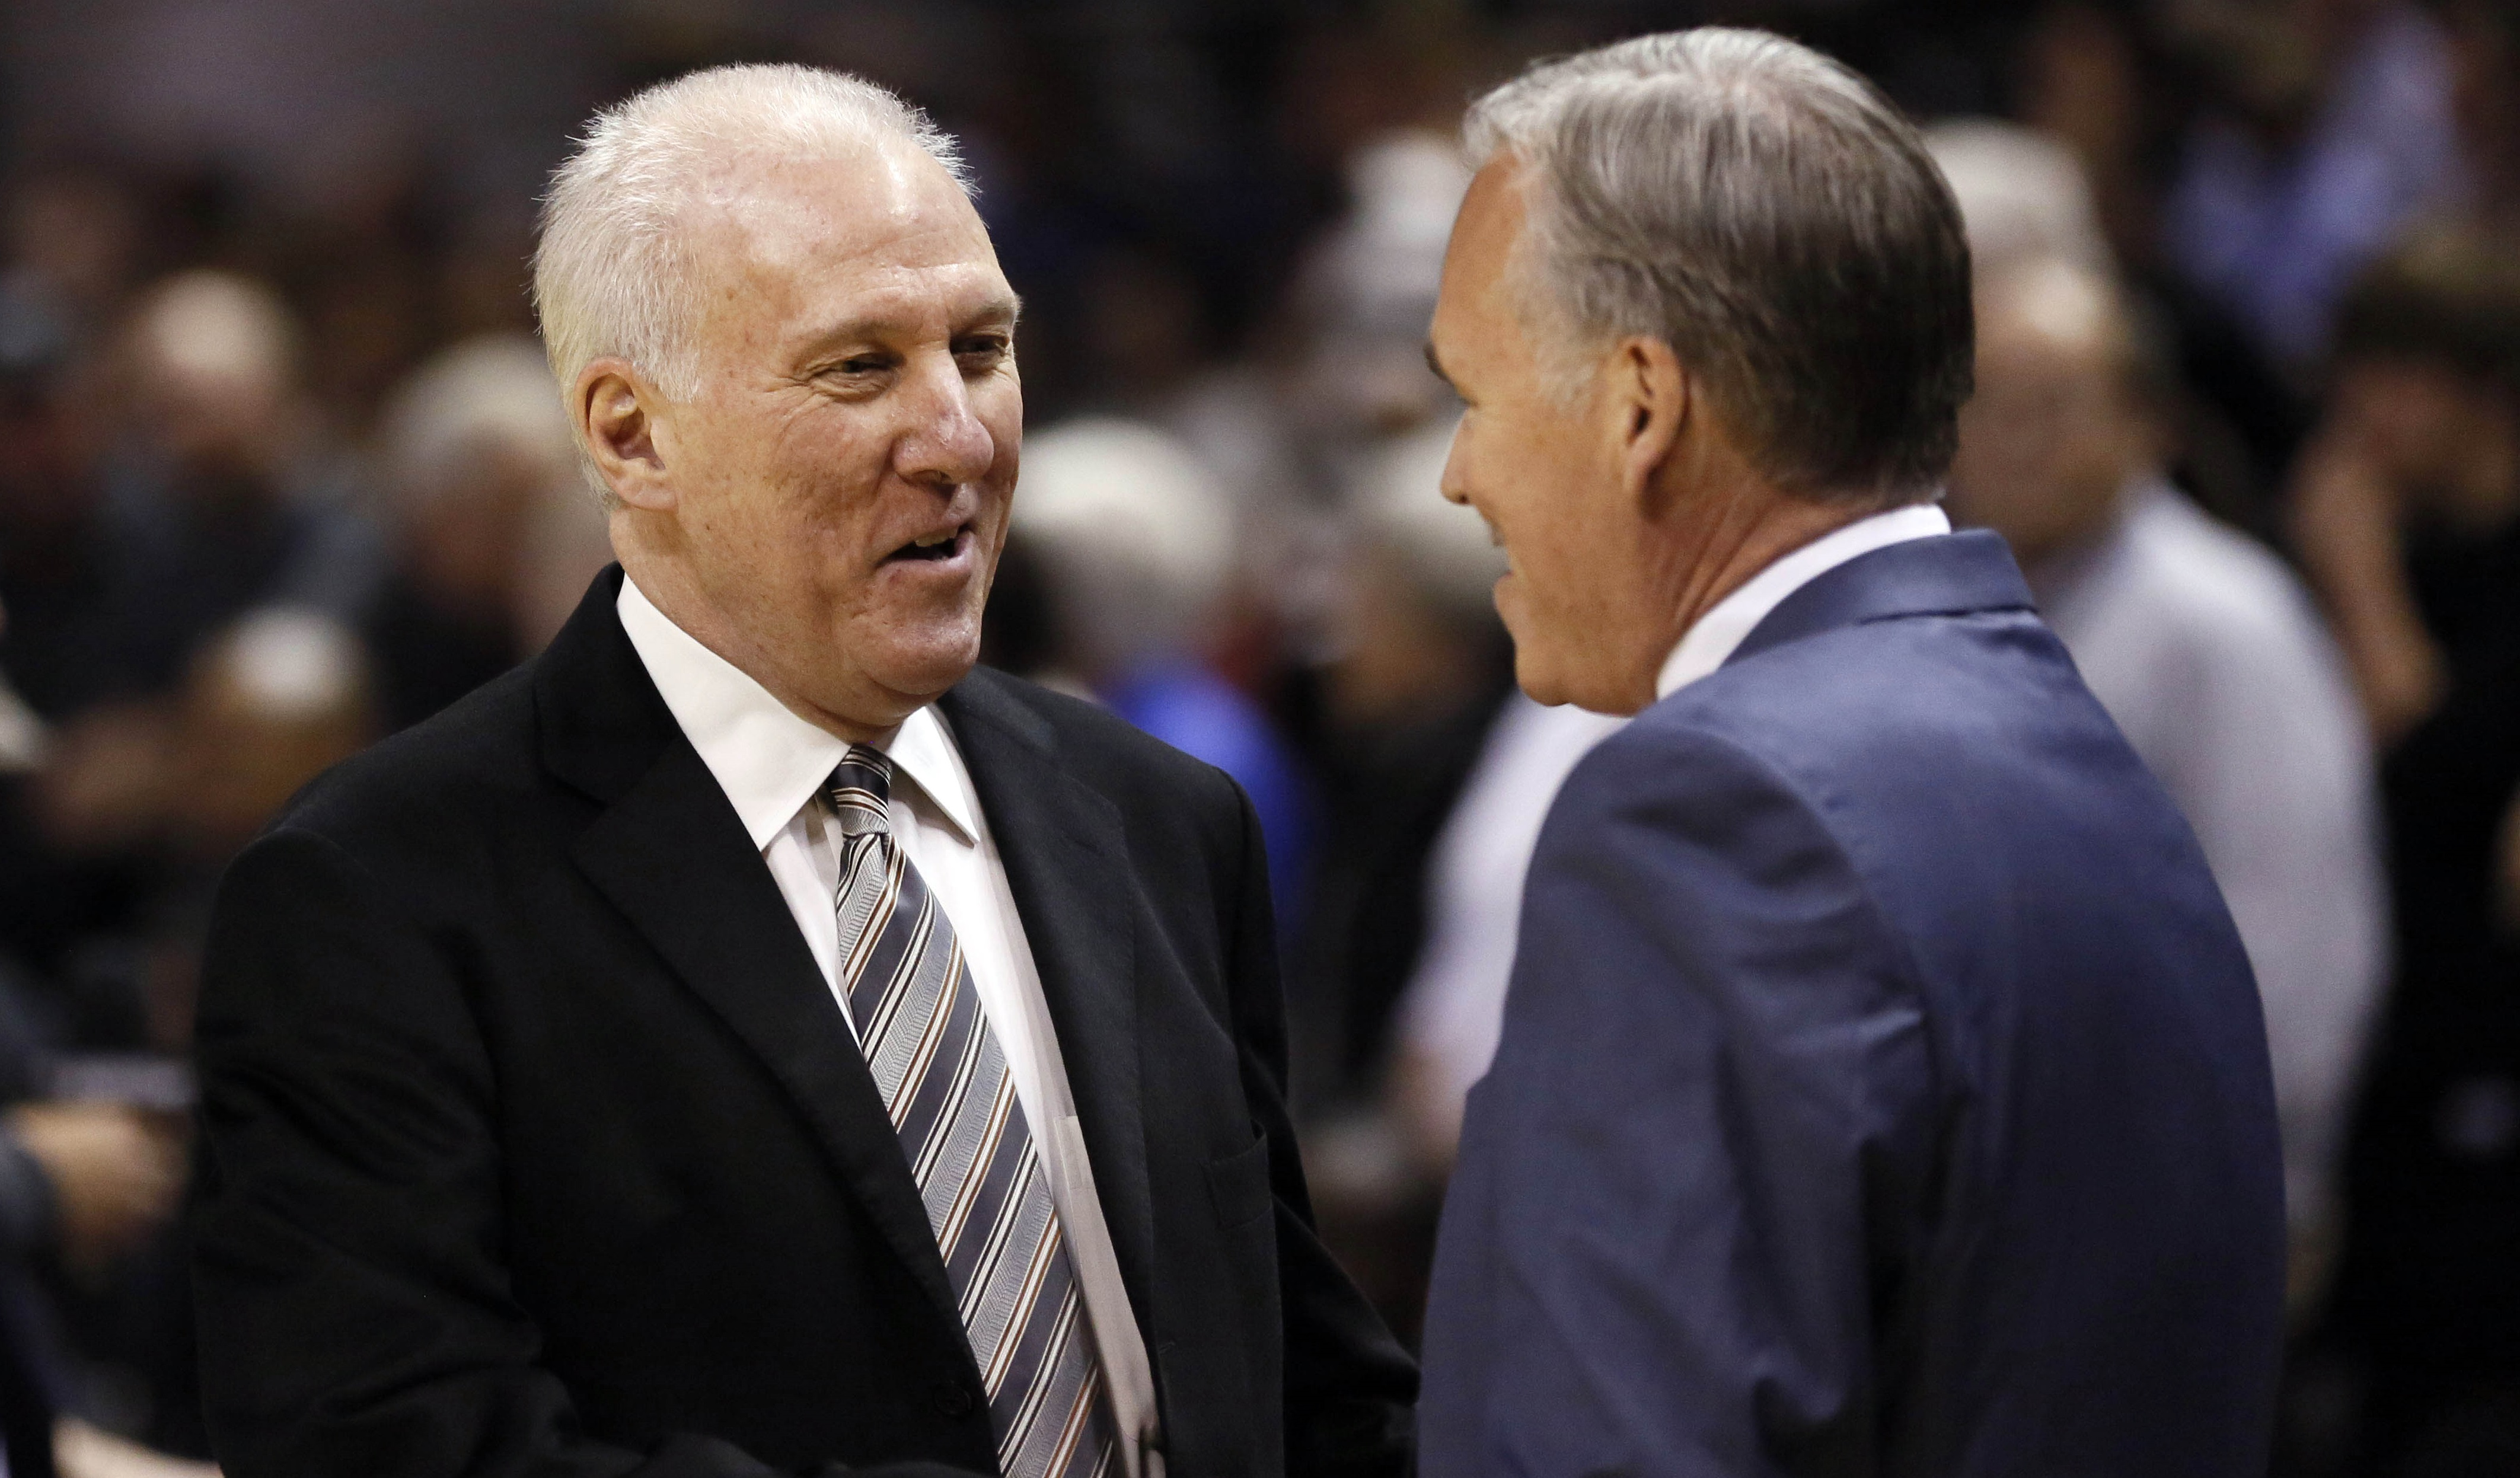 Mar 14, 2014; San Antonio, TX, USA; San Antonio Spurs head coach Gregg Popovich (left) and Los Angeles Lakers head coach Mike D'Antoni (right) greet before the game at AT&T Center. Mandatory Credit: Soobum Im-USA TODAY Sports